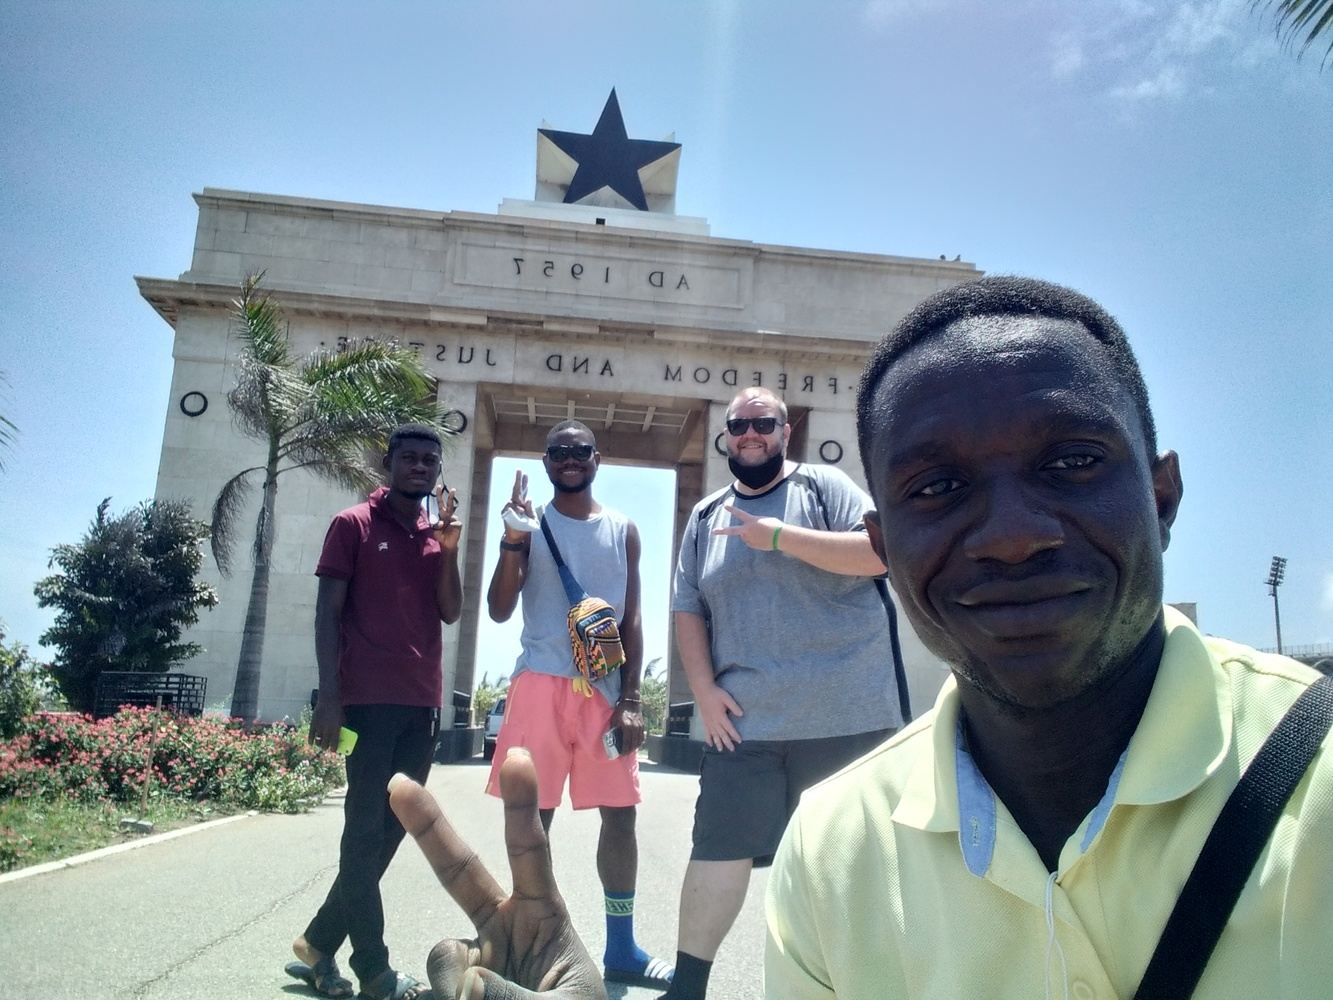 EXPERIENCE THE BEAUTY, HISTORY AND CULTURE OF ACCRA IN A DAY